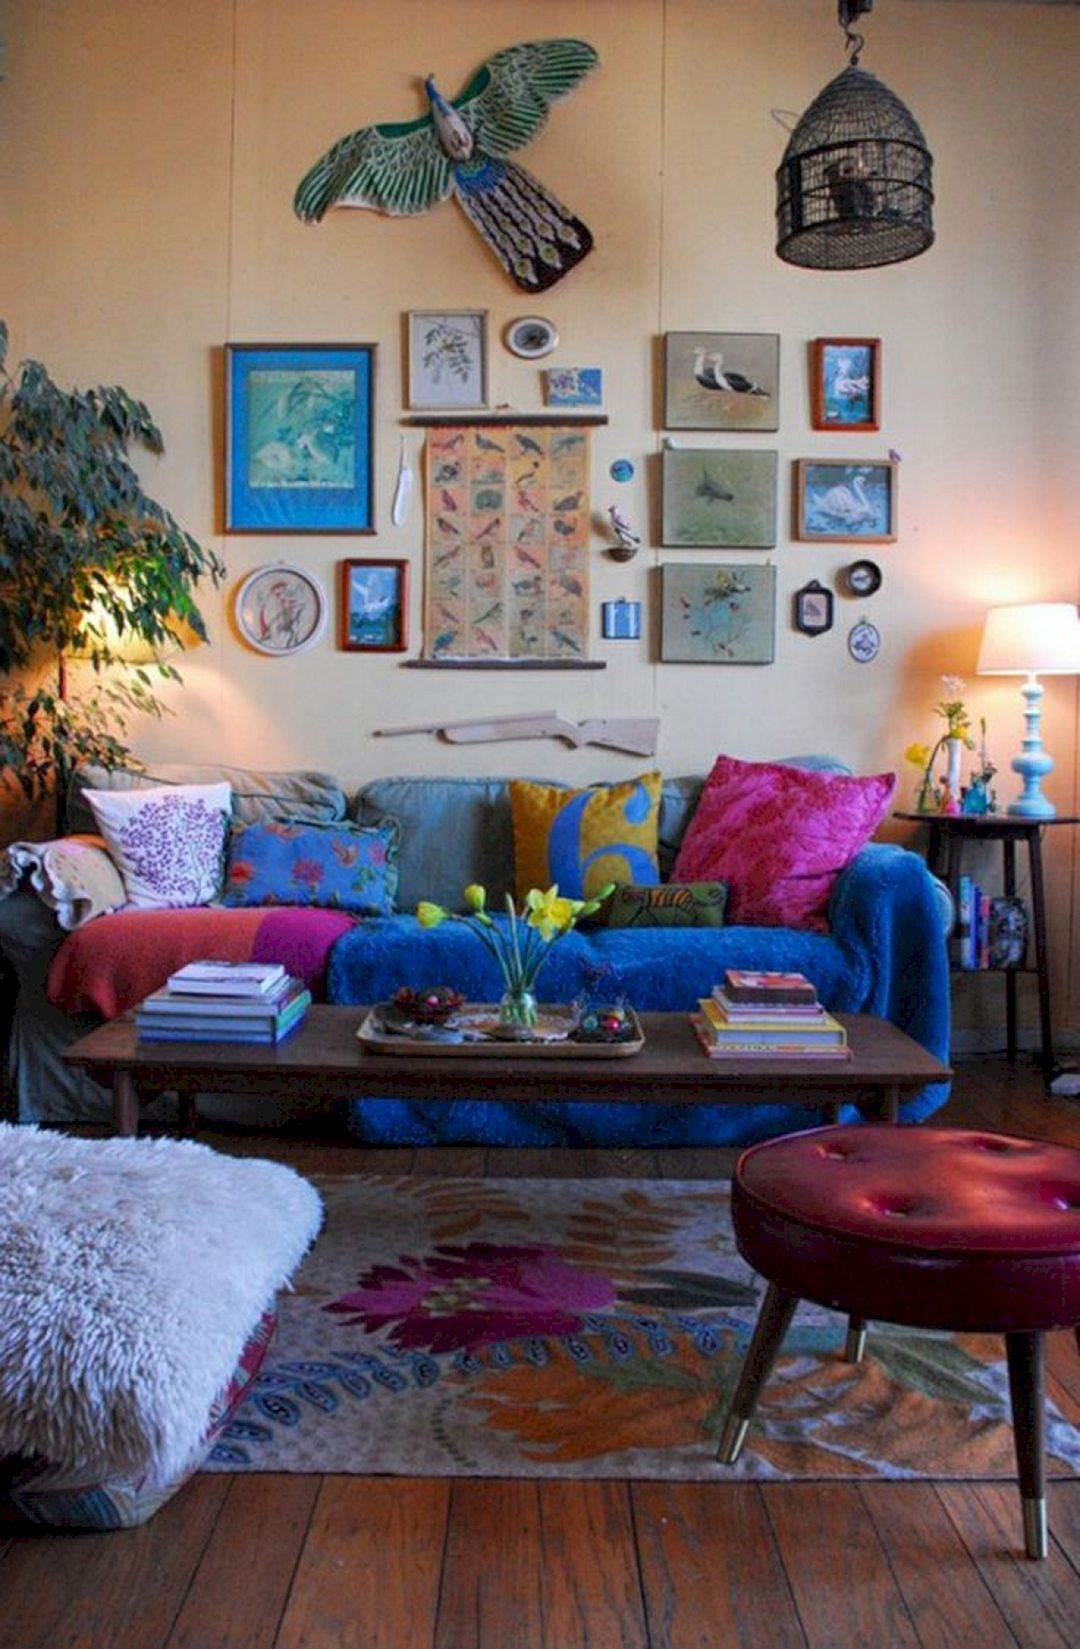 Over 40 boho style decor